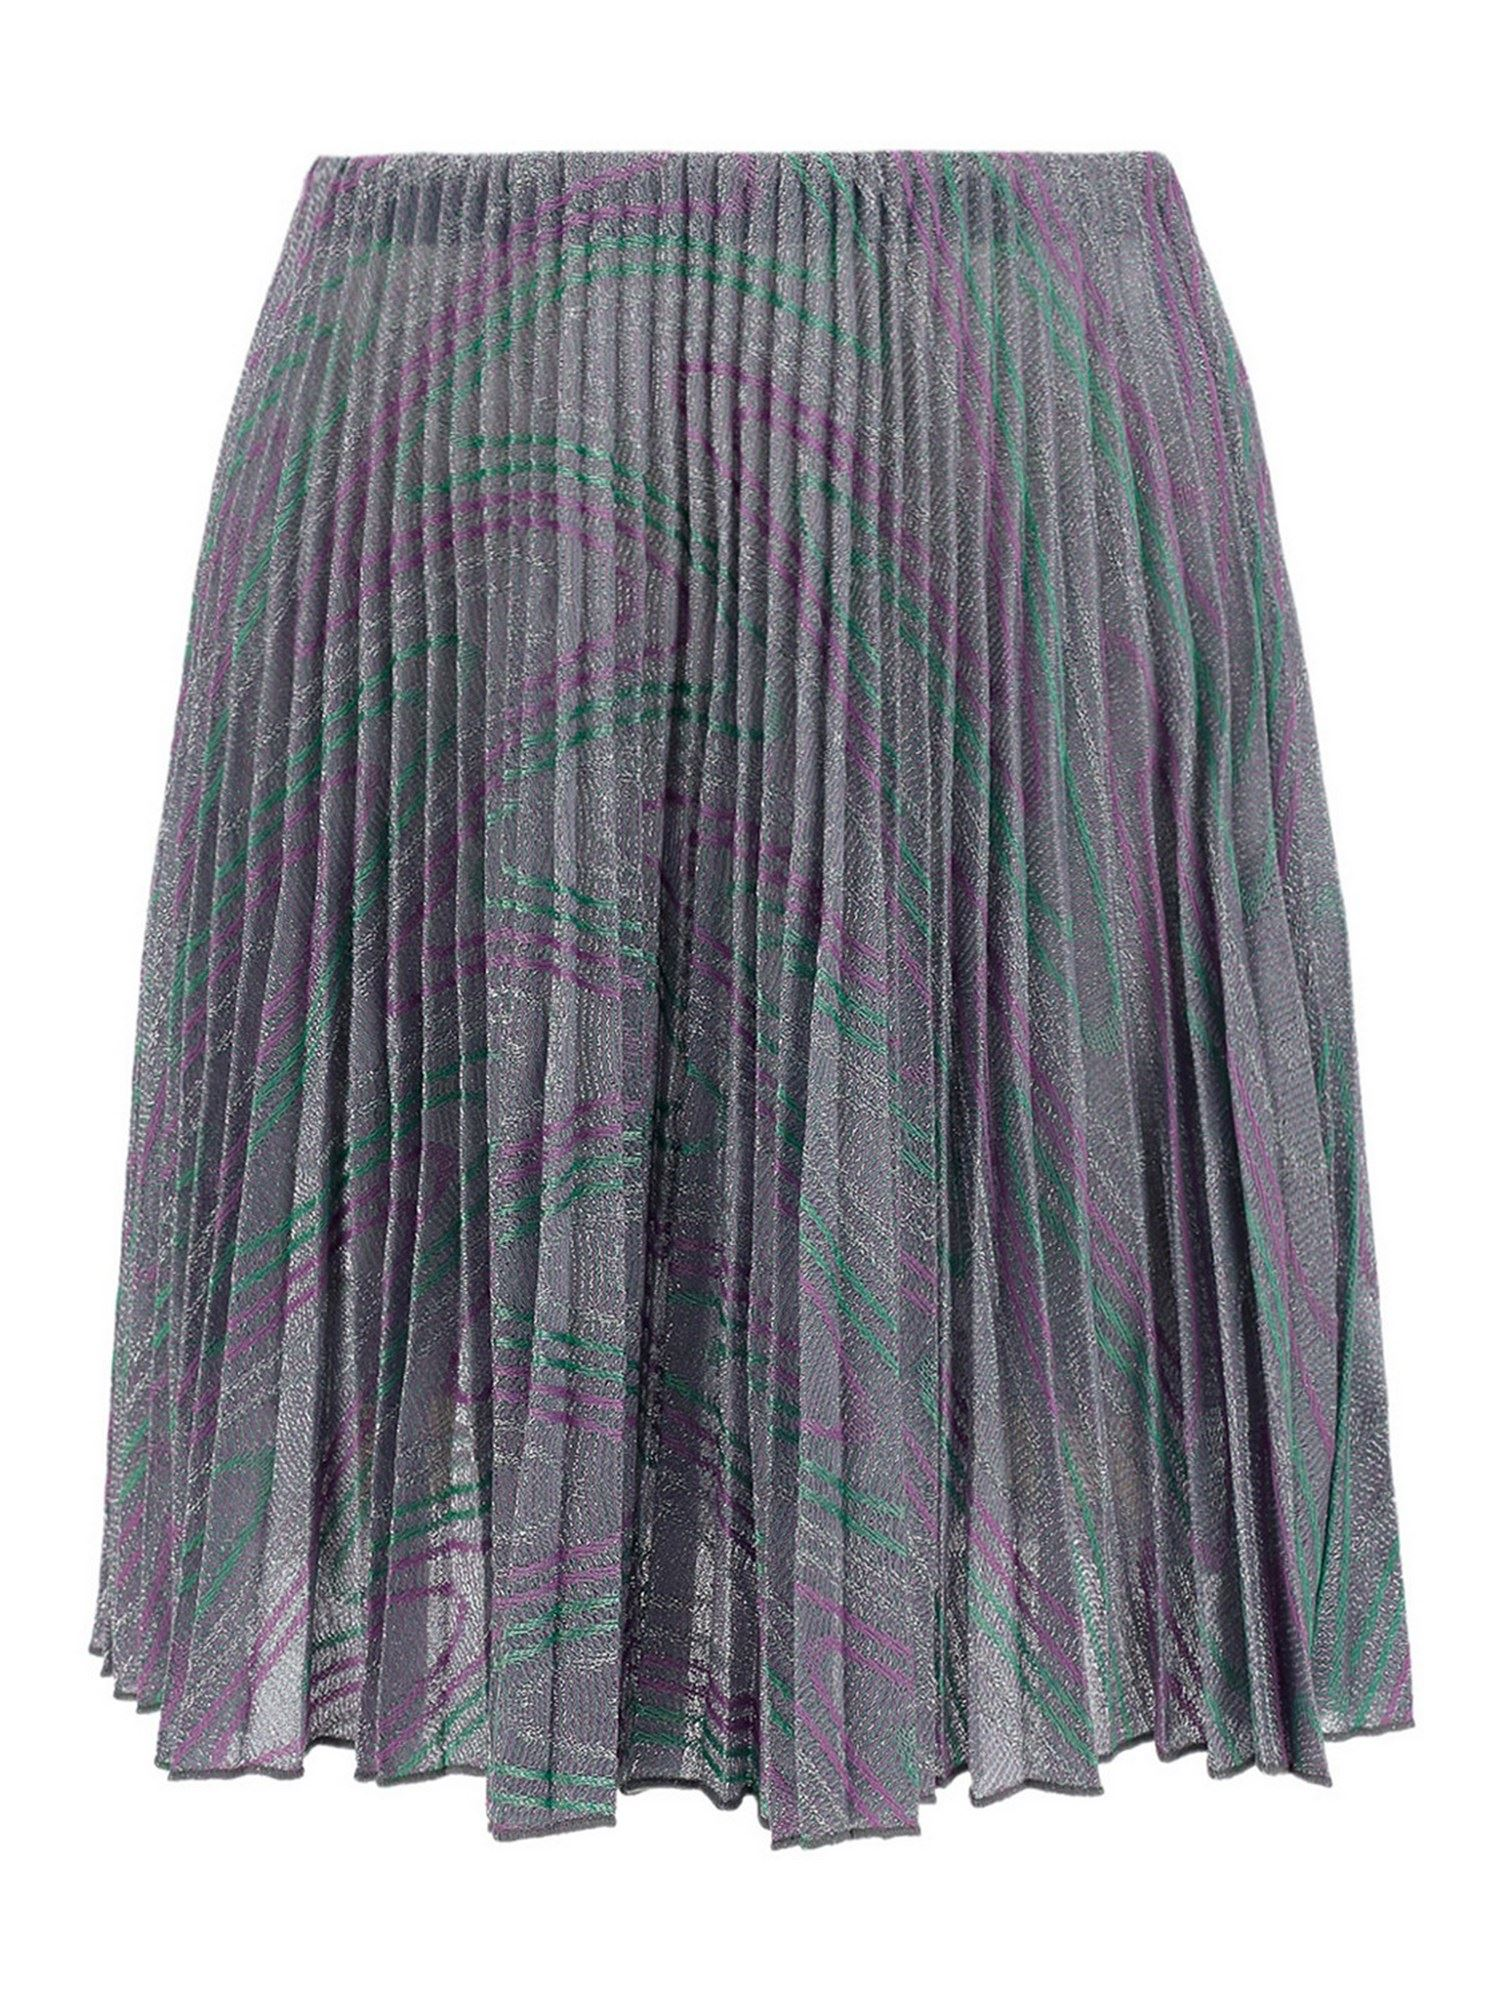 M Missoni Cottons COTTON BLEND PLEATED SKIRT IN SILVER COLOR